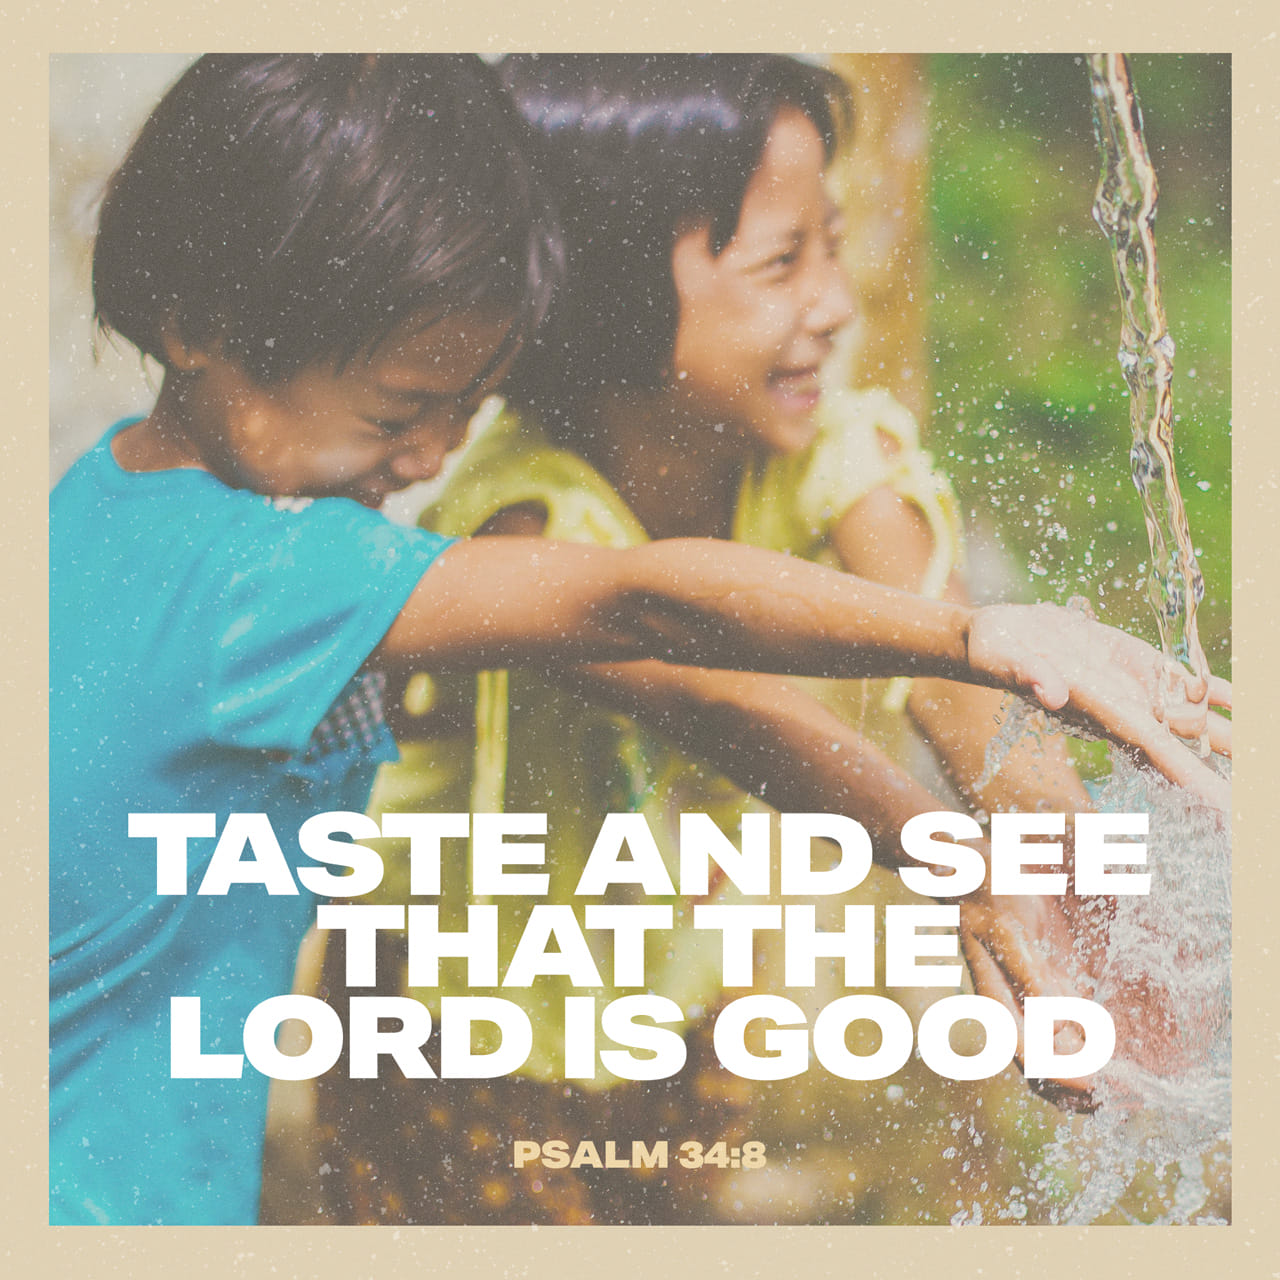 Psalms 34:8 O taste and see that the LORD is good: blessed is the man that trusteth in him. | King James Version (KJV)